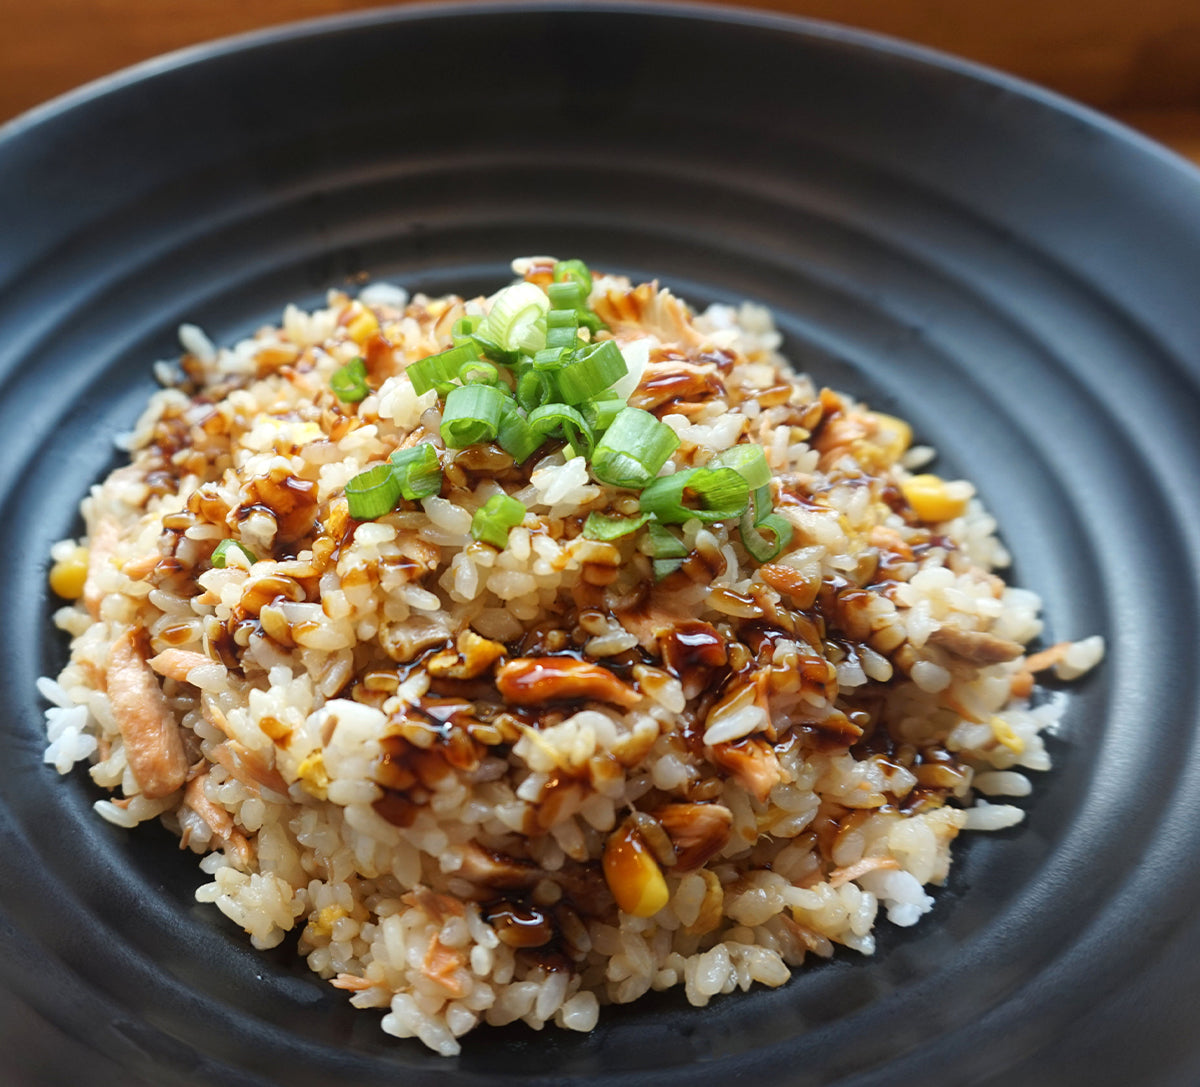 Rise-fried-rice-cooking-spice-ingredients-oats-fall-drink-tasty-nitro-cold-brew-coffee-rise